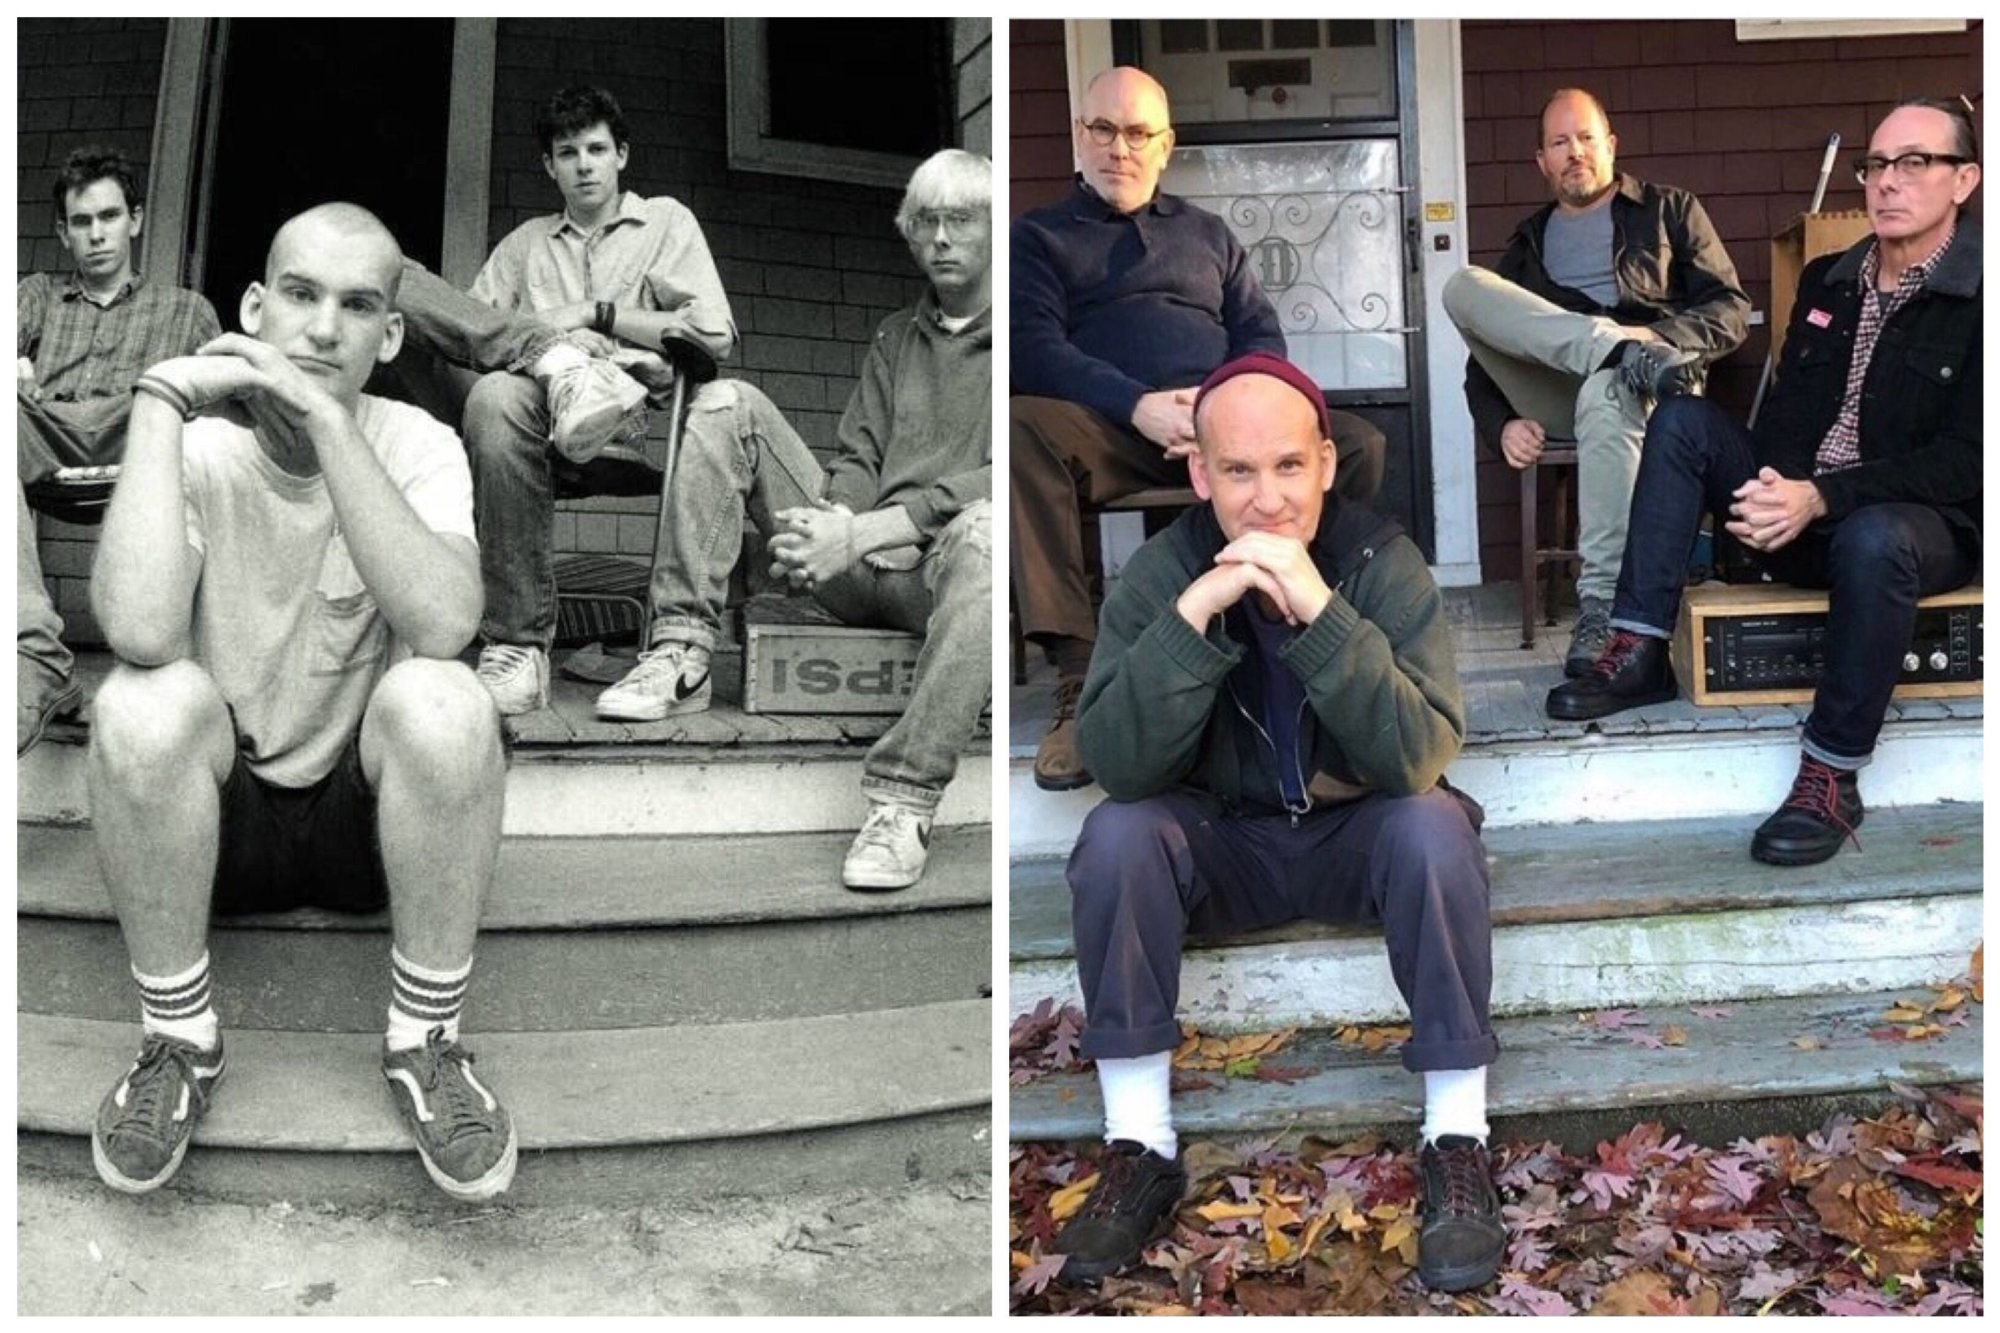 DC punk legends Minor Threat reunite — for iconic photo only | WTOP